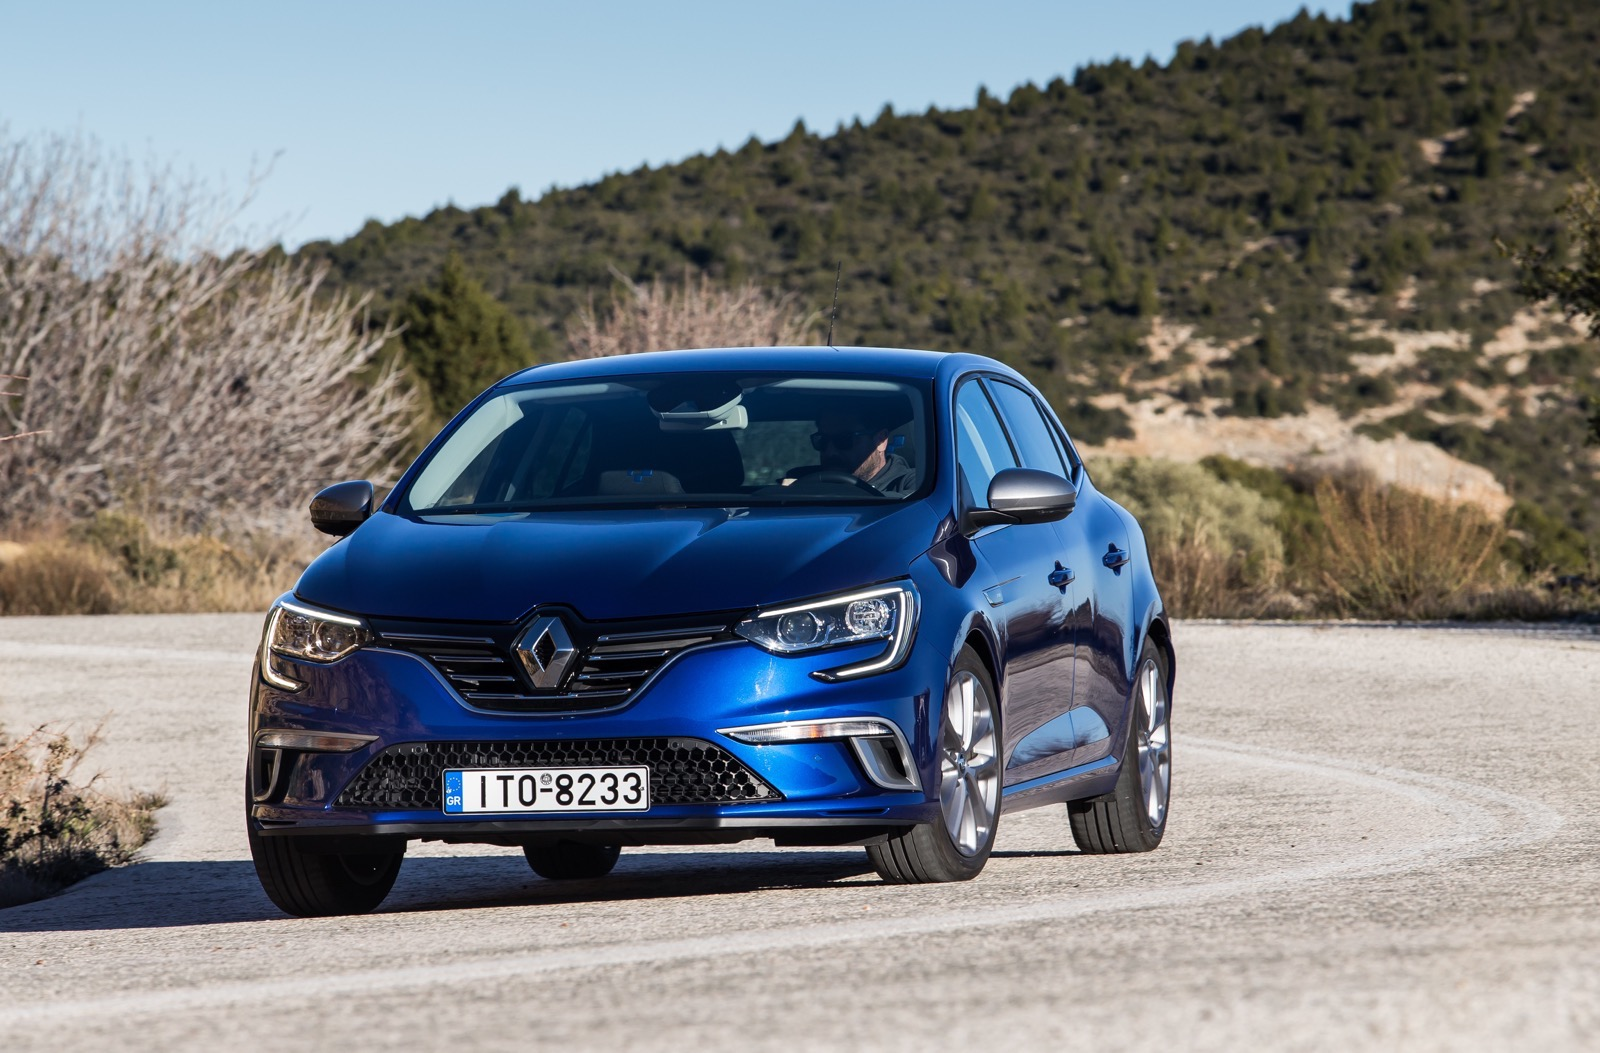 First_Drive_Renault_Megane_75